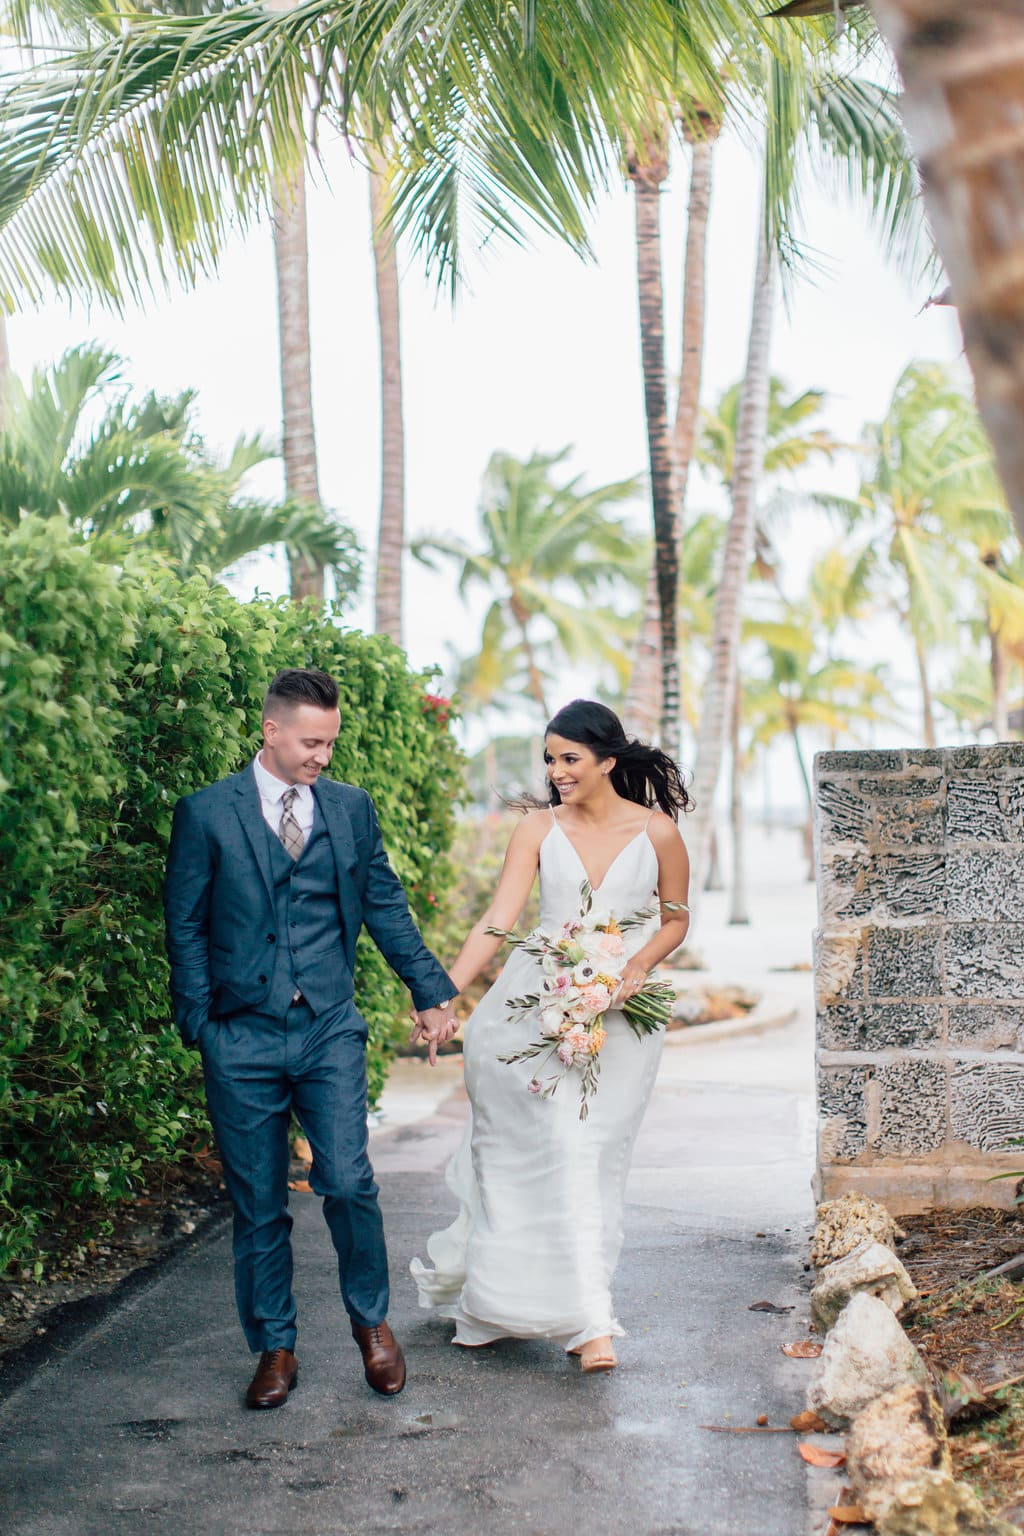 hannahlane photography miami wedding photographer